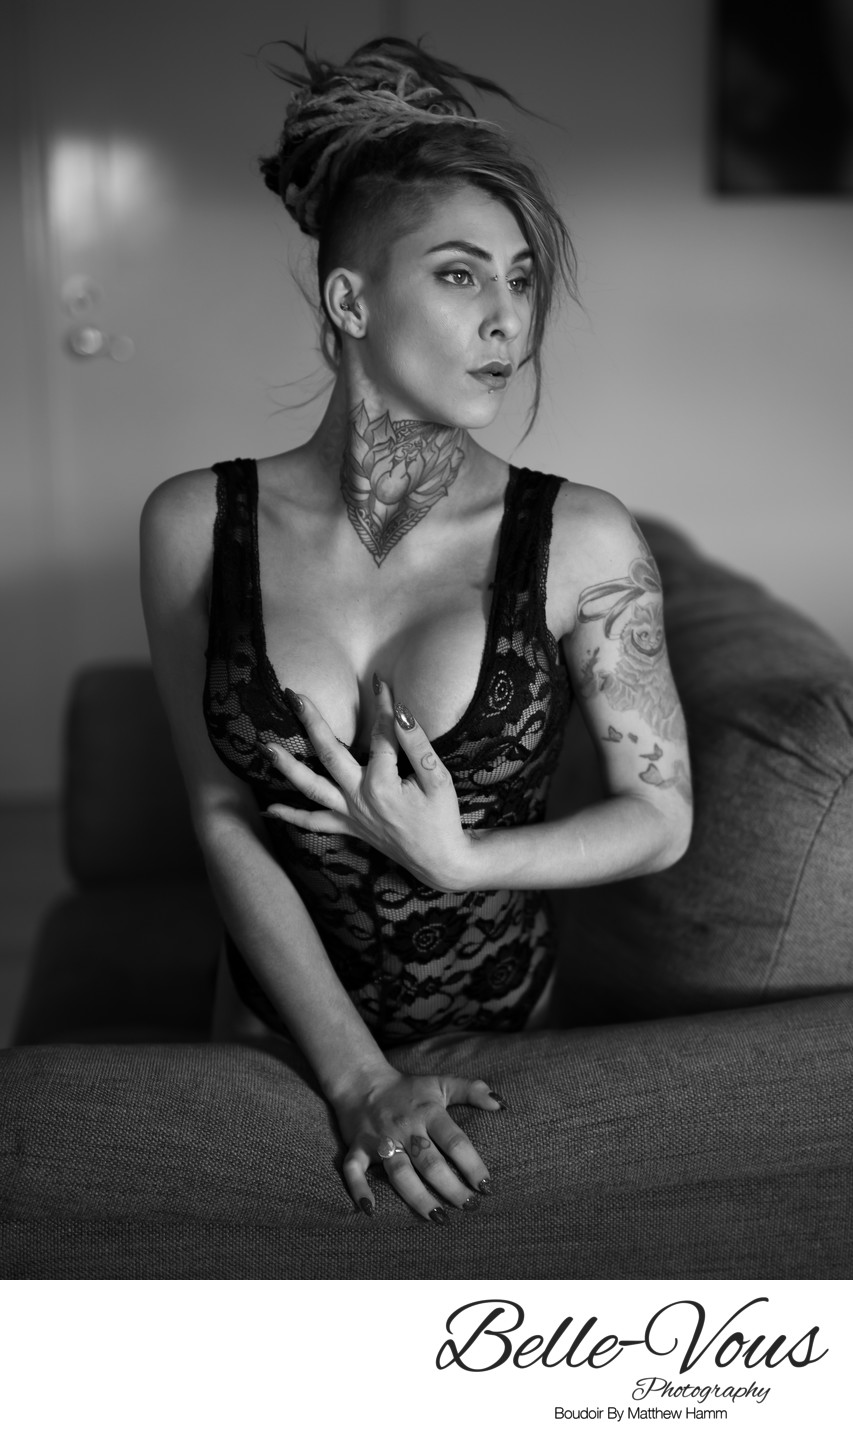 Sexy Boudoir Portrait Of A Woman With Tattoos